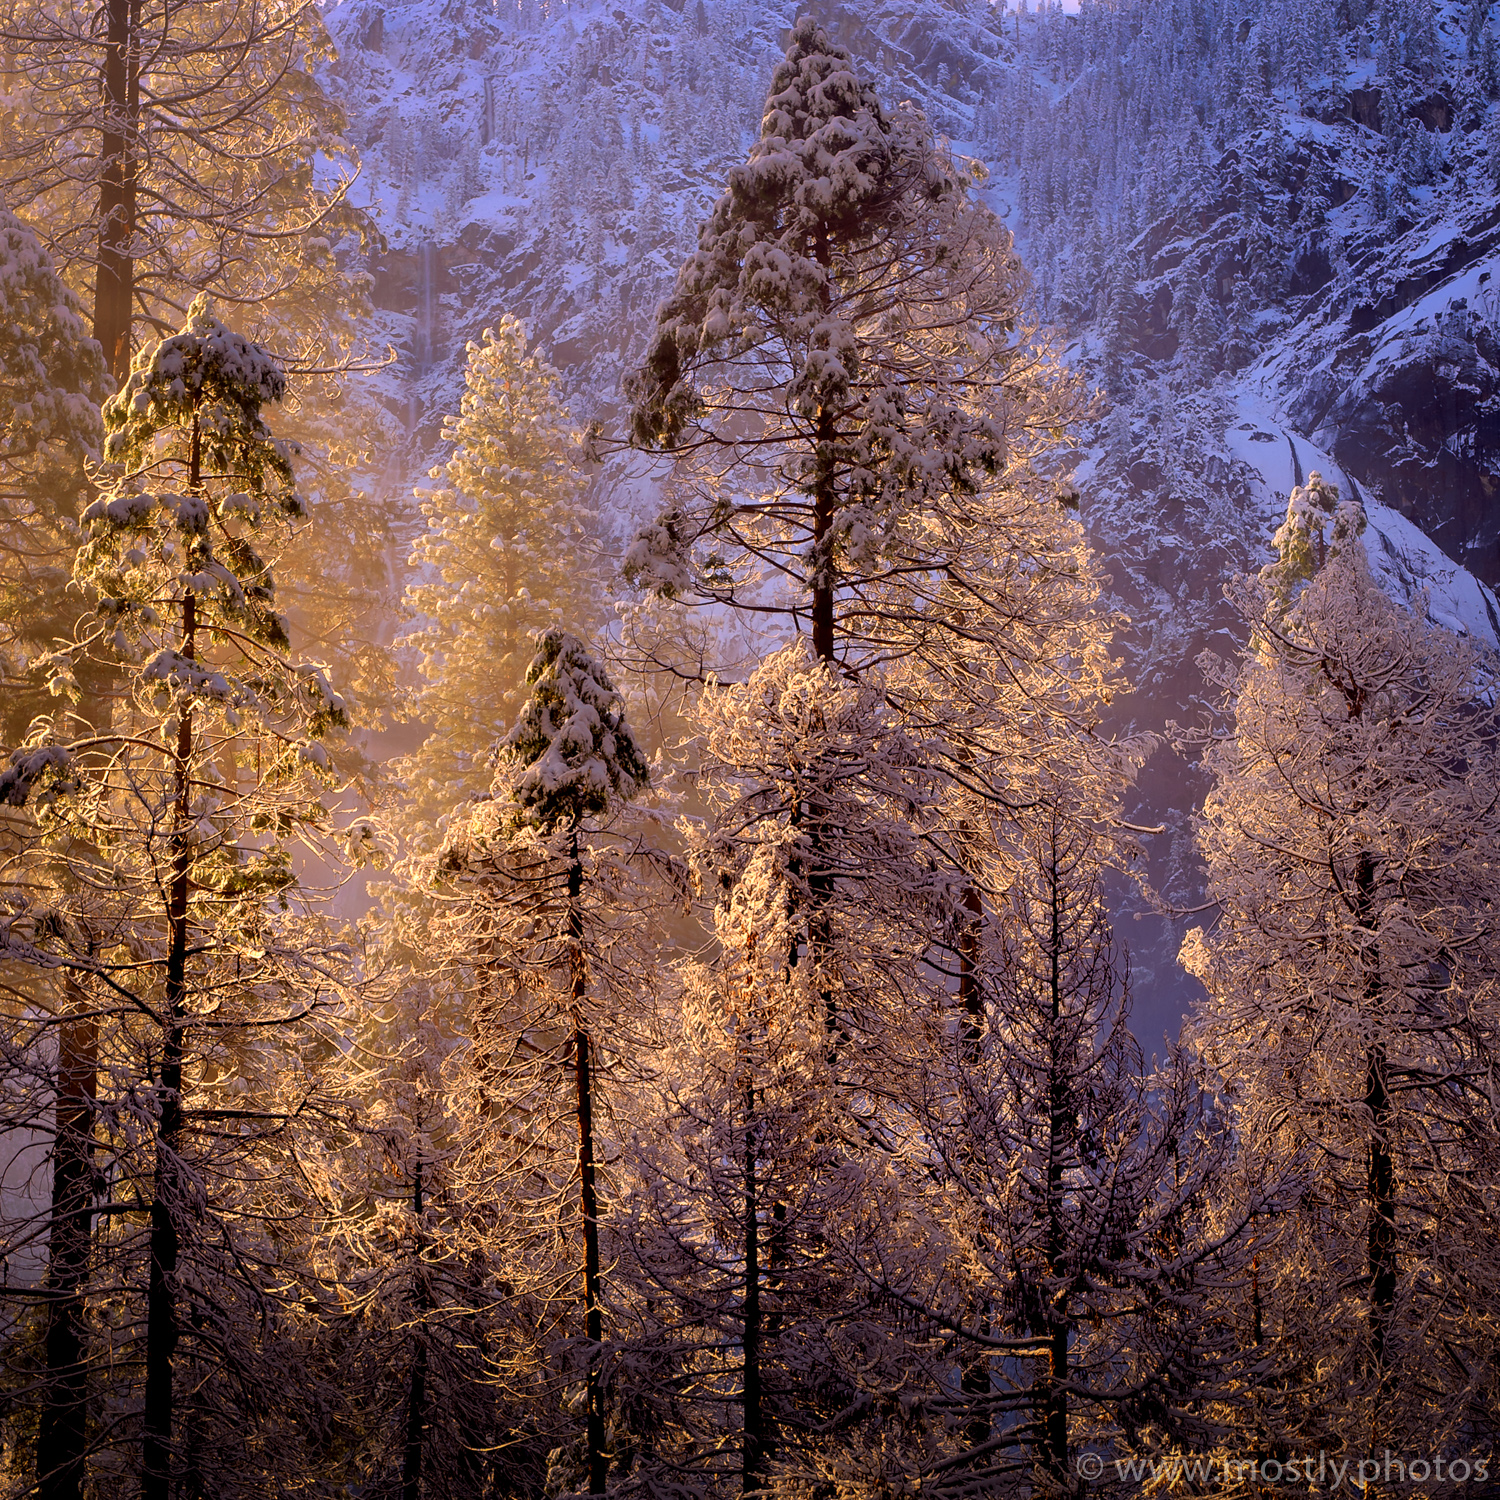 Sunlit Trees - Yosemite National Park, California